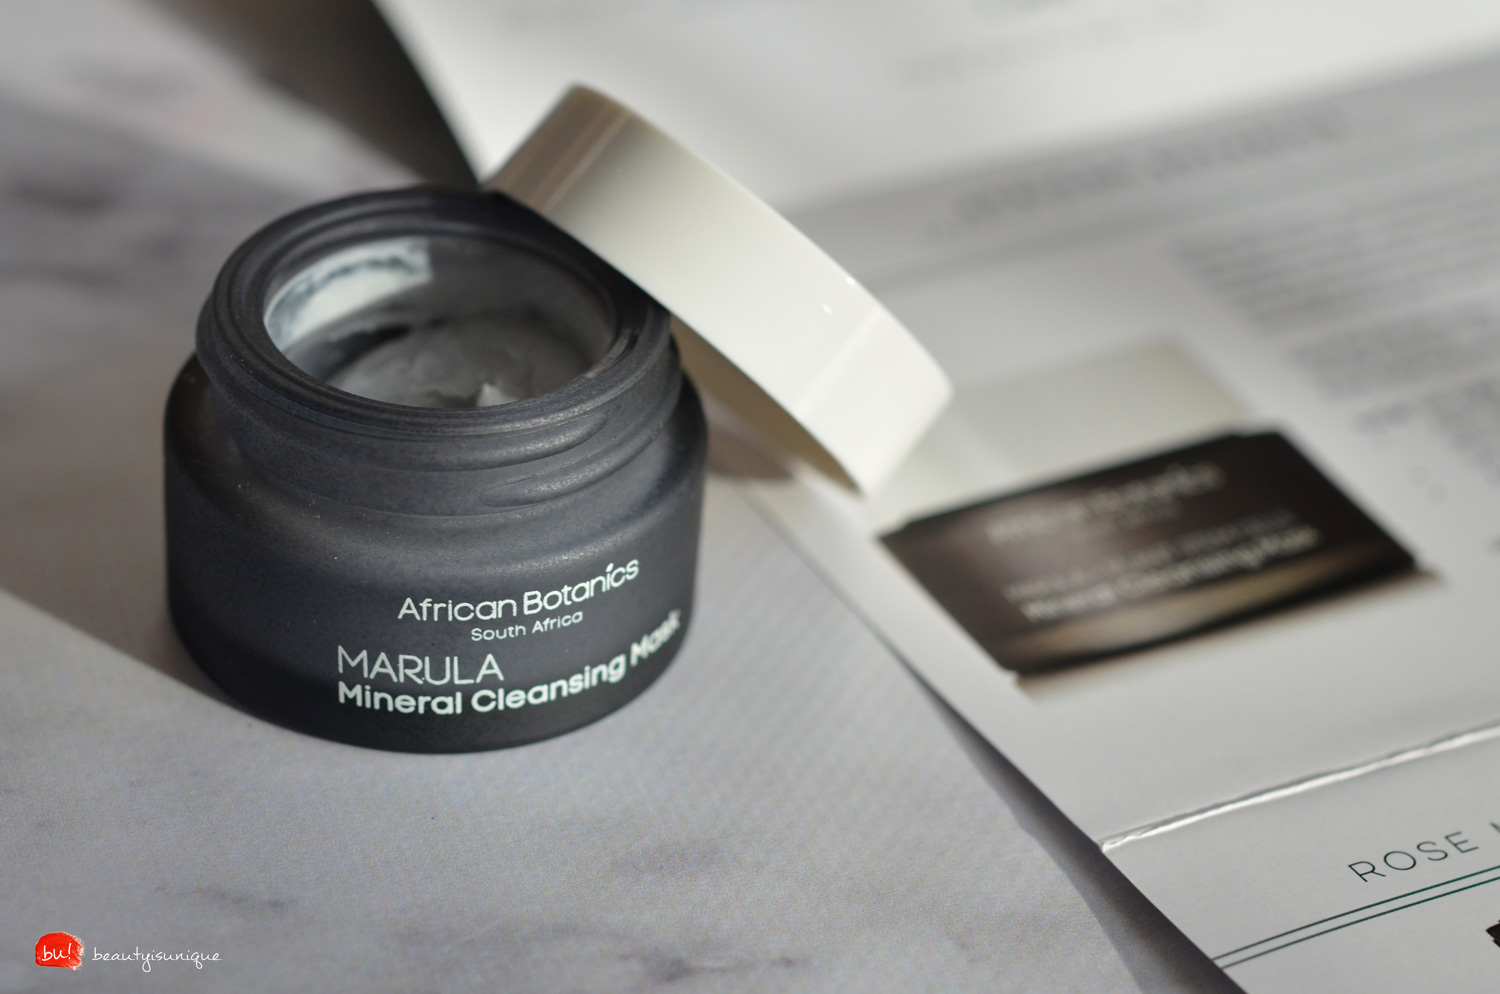 African-botanics-marula-mineral-cleansing-mask